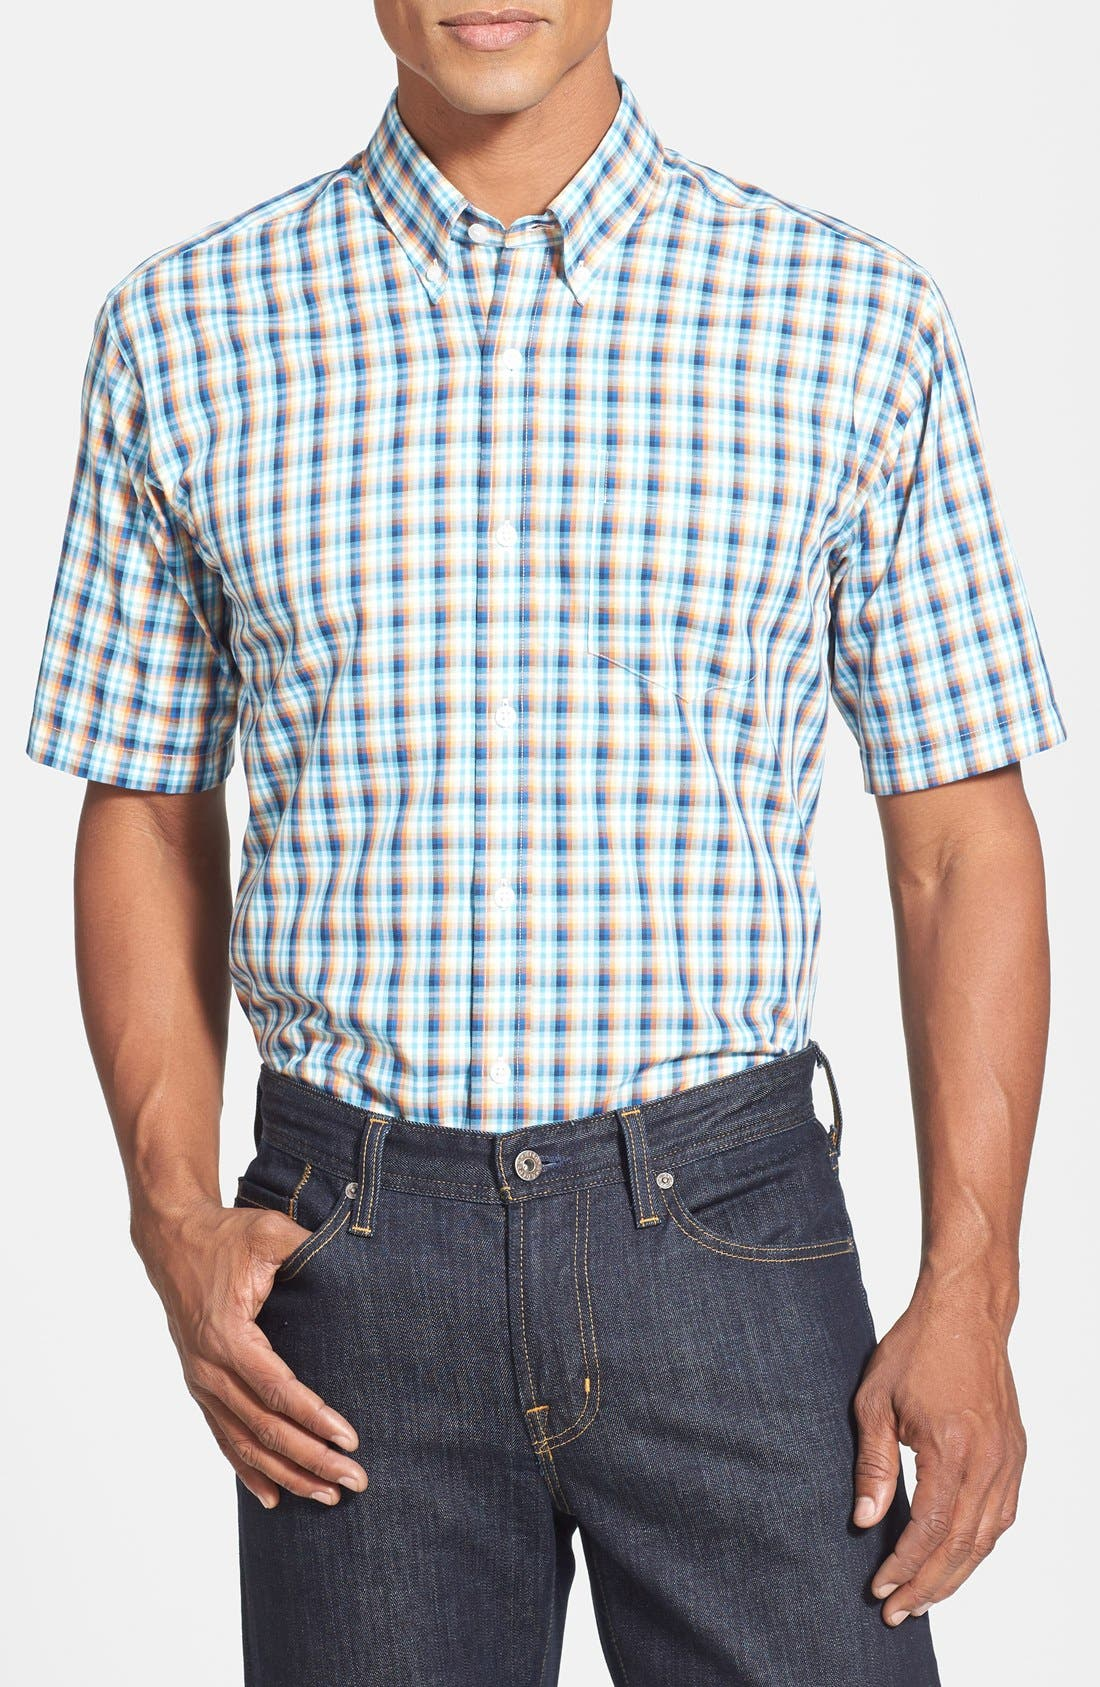 Alternate Image 1 Selected - Cutter & Buck 'Morton Road' Classic Fit Short Sleeve Plaid Sport Shirt (Big & Tall)